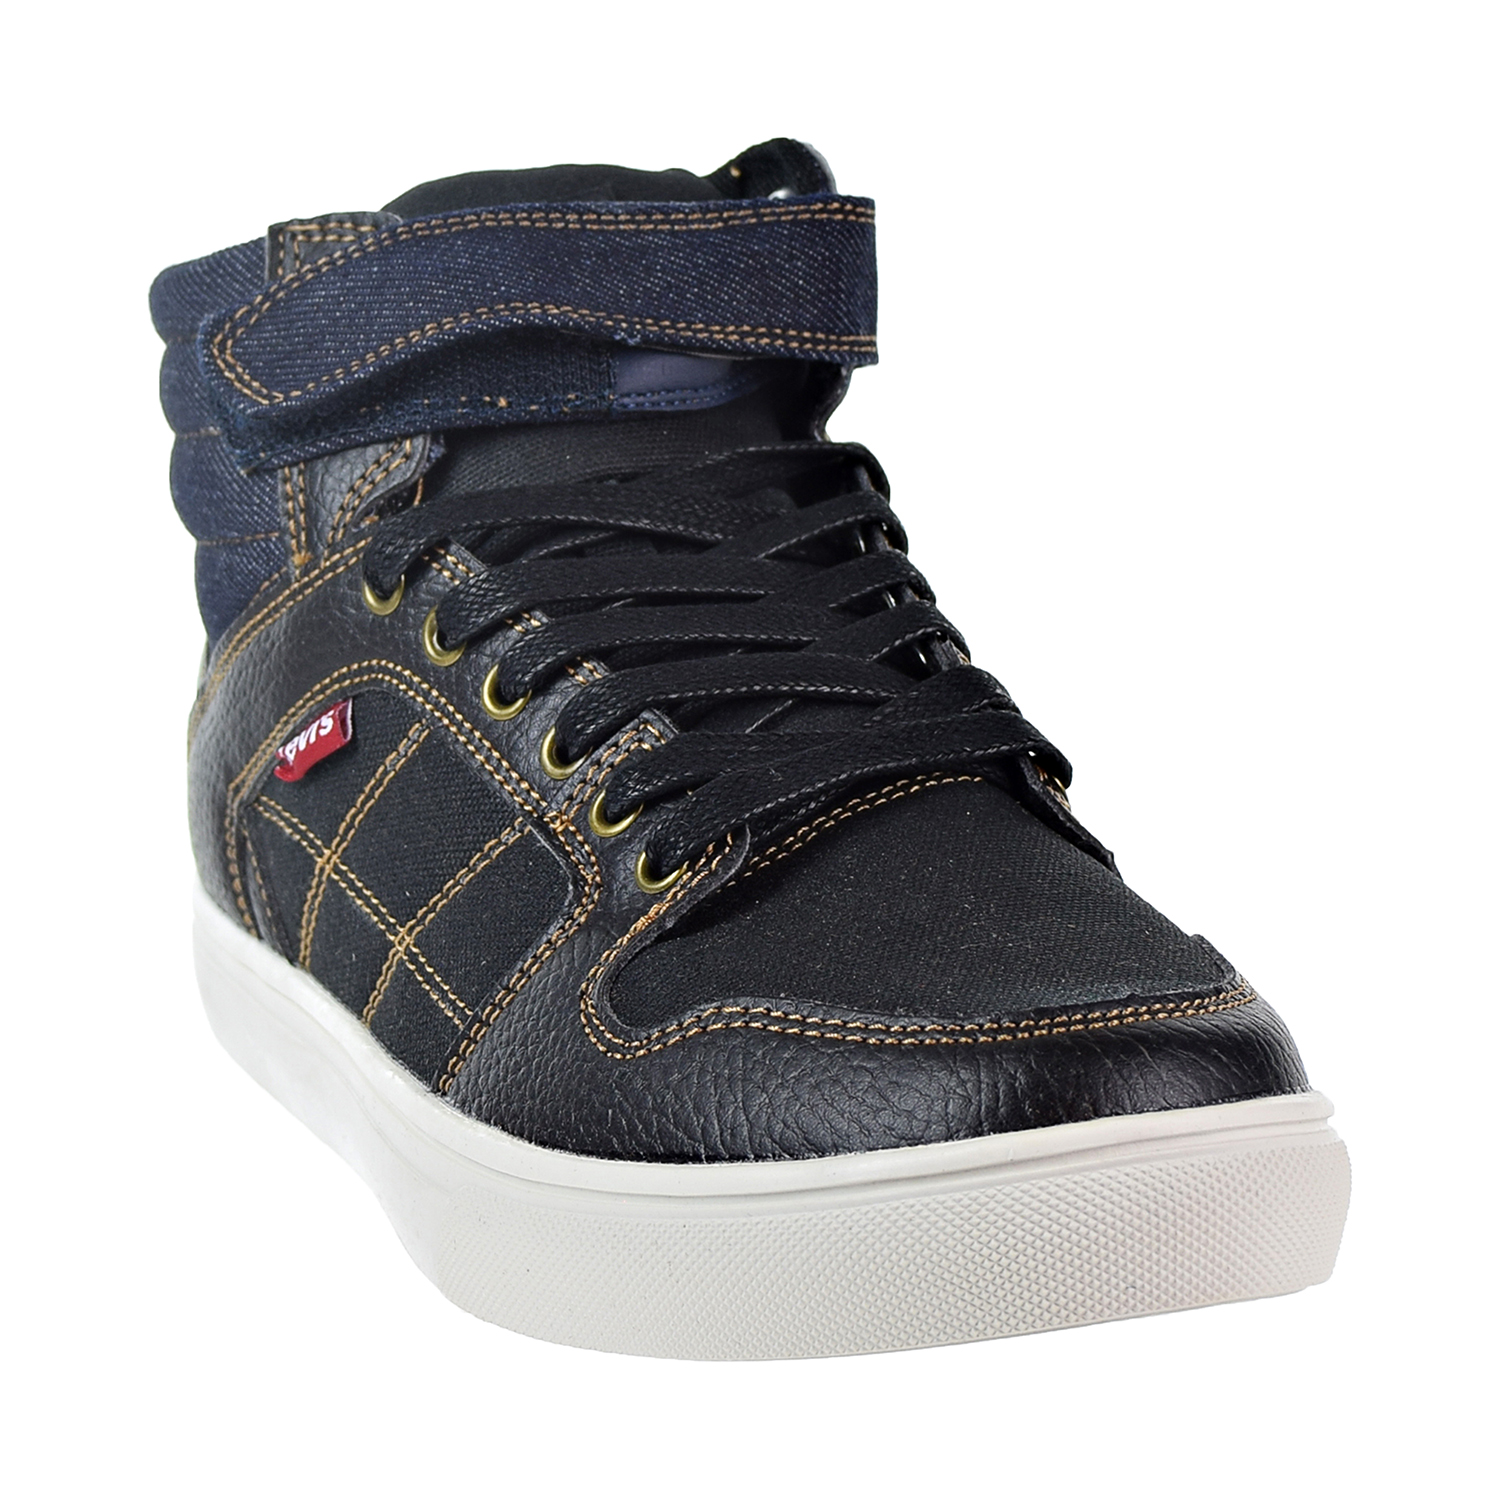 98011938044e Details about Levis Oakley Casual Men's Shoes Black/Indigo 517397-Q66